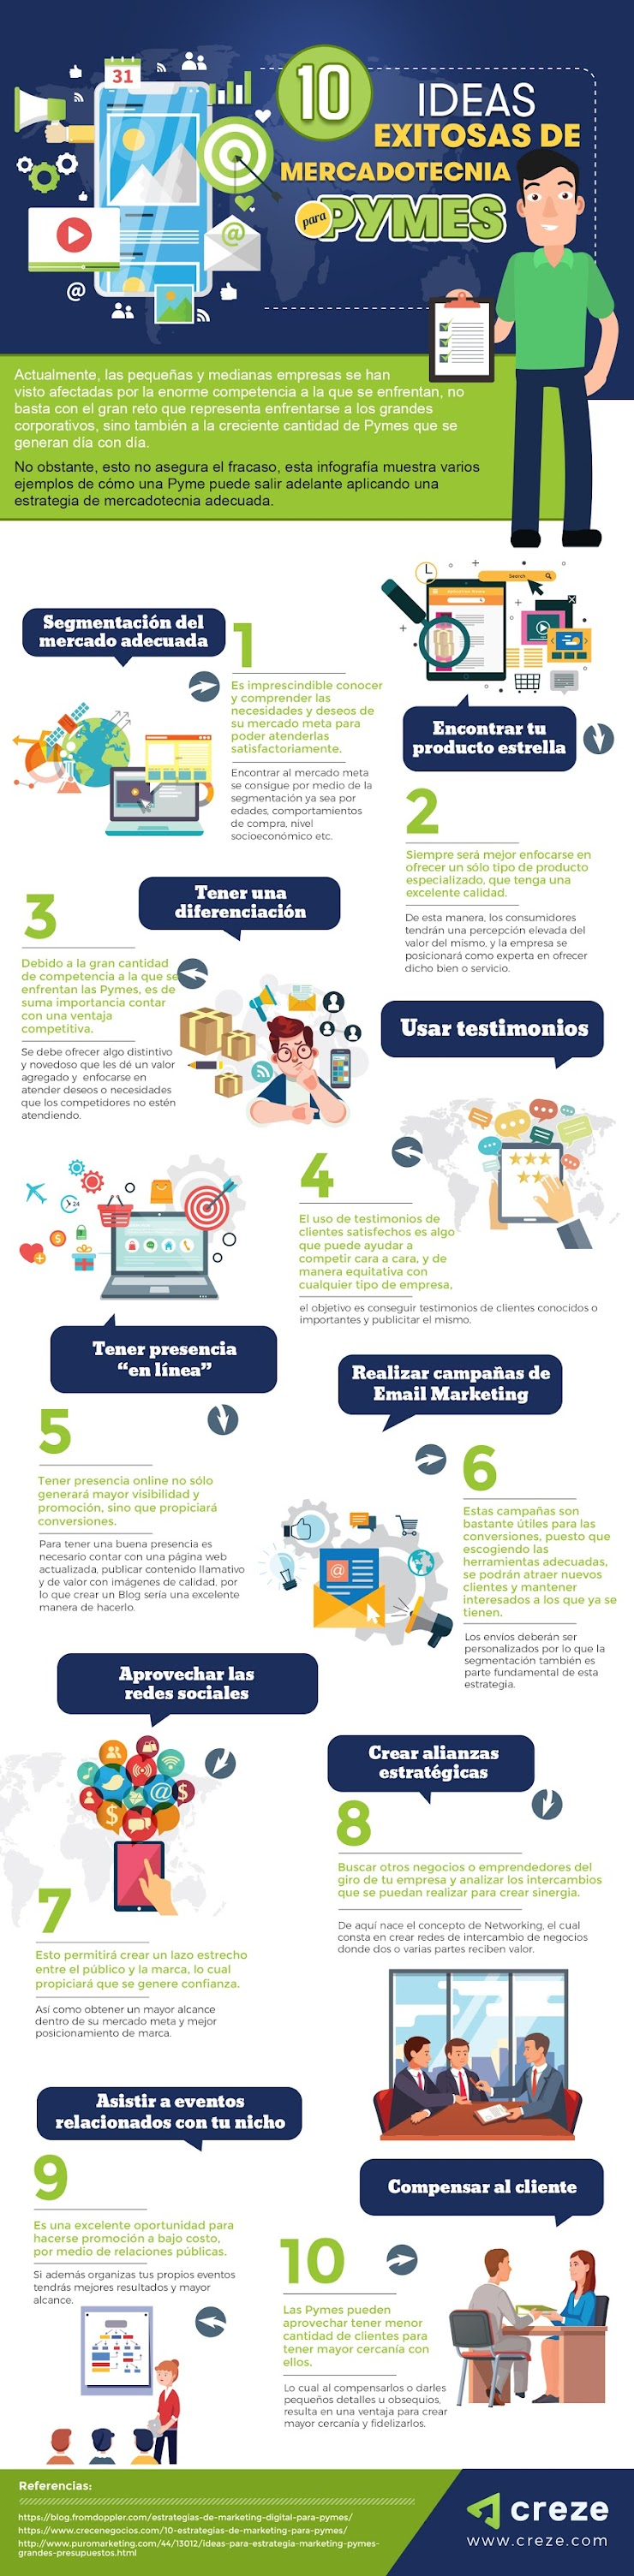 Ideas de Marketing para Pymes